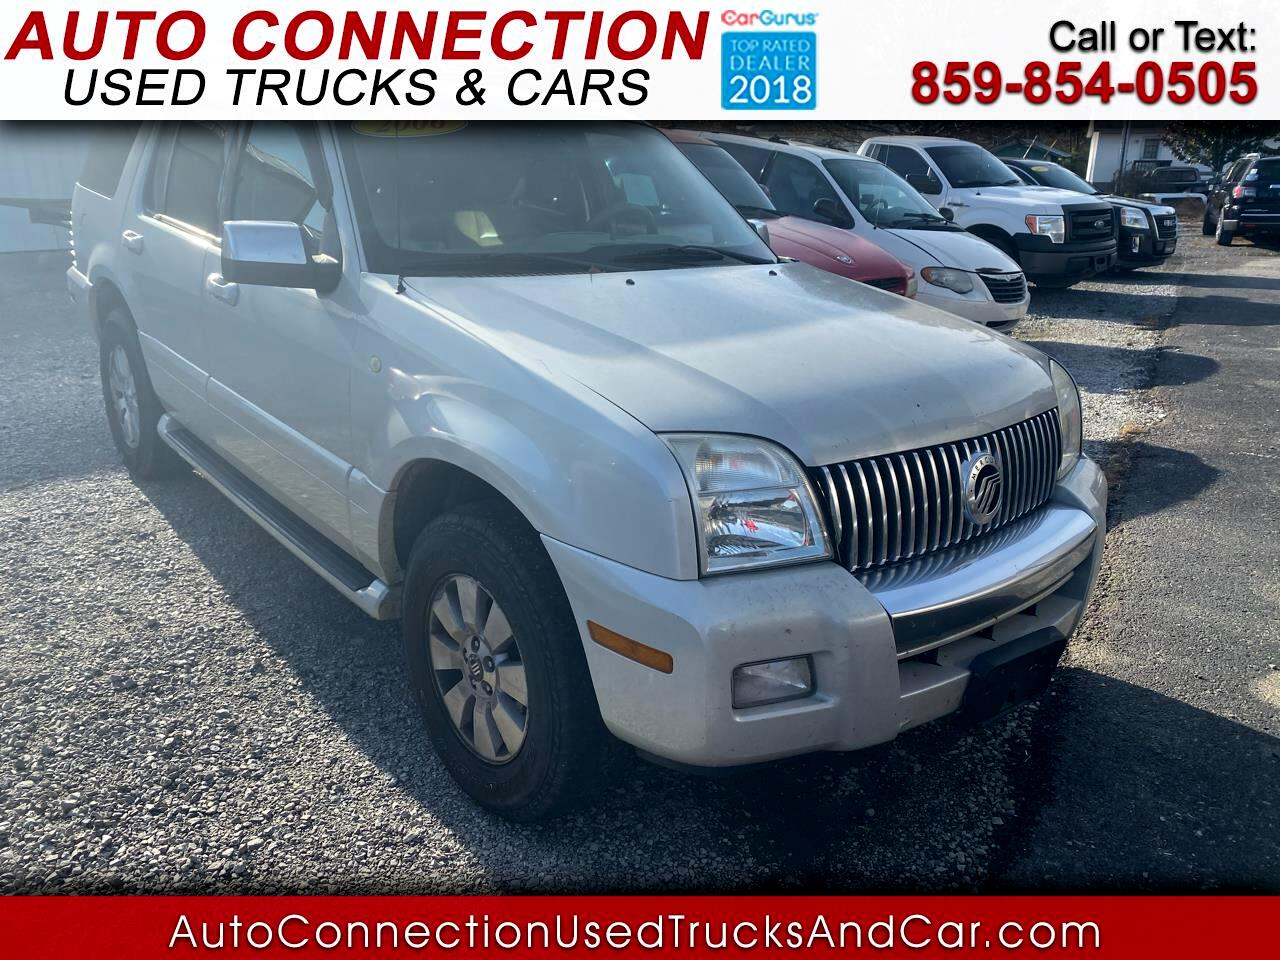 Mercury Mountaineer 4dr Premier w/4.6L AWD 2006